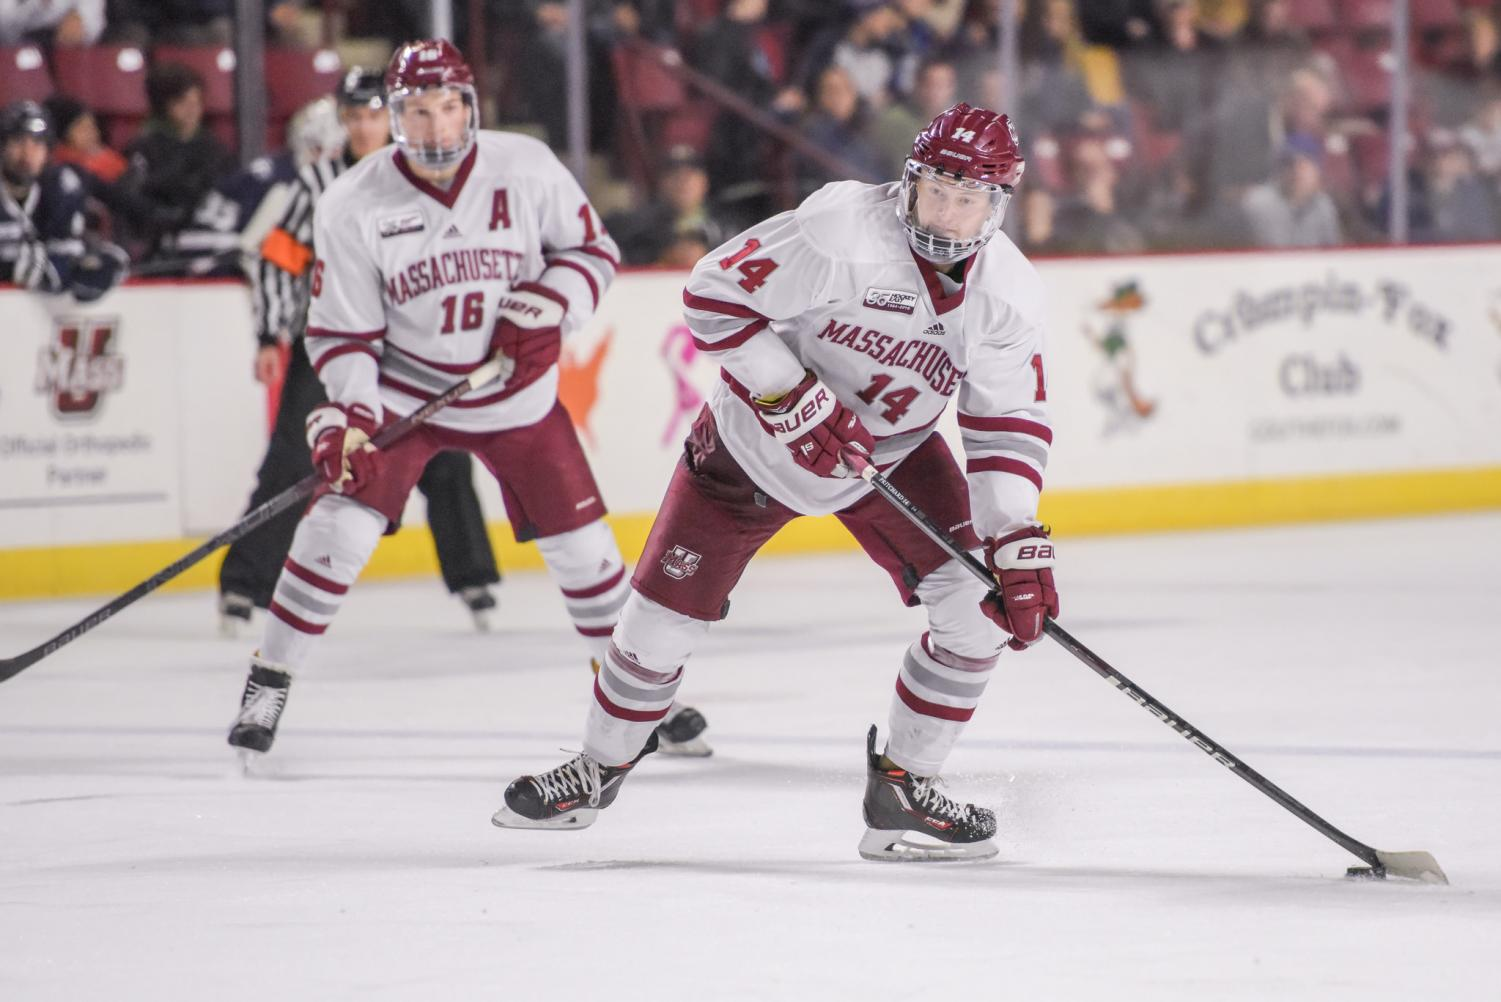 (Caroline O'Connor/UMass Athletics)